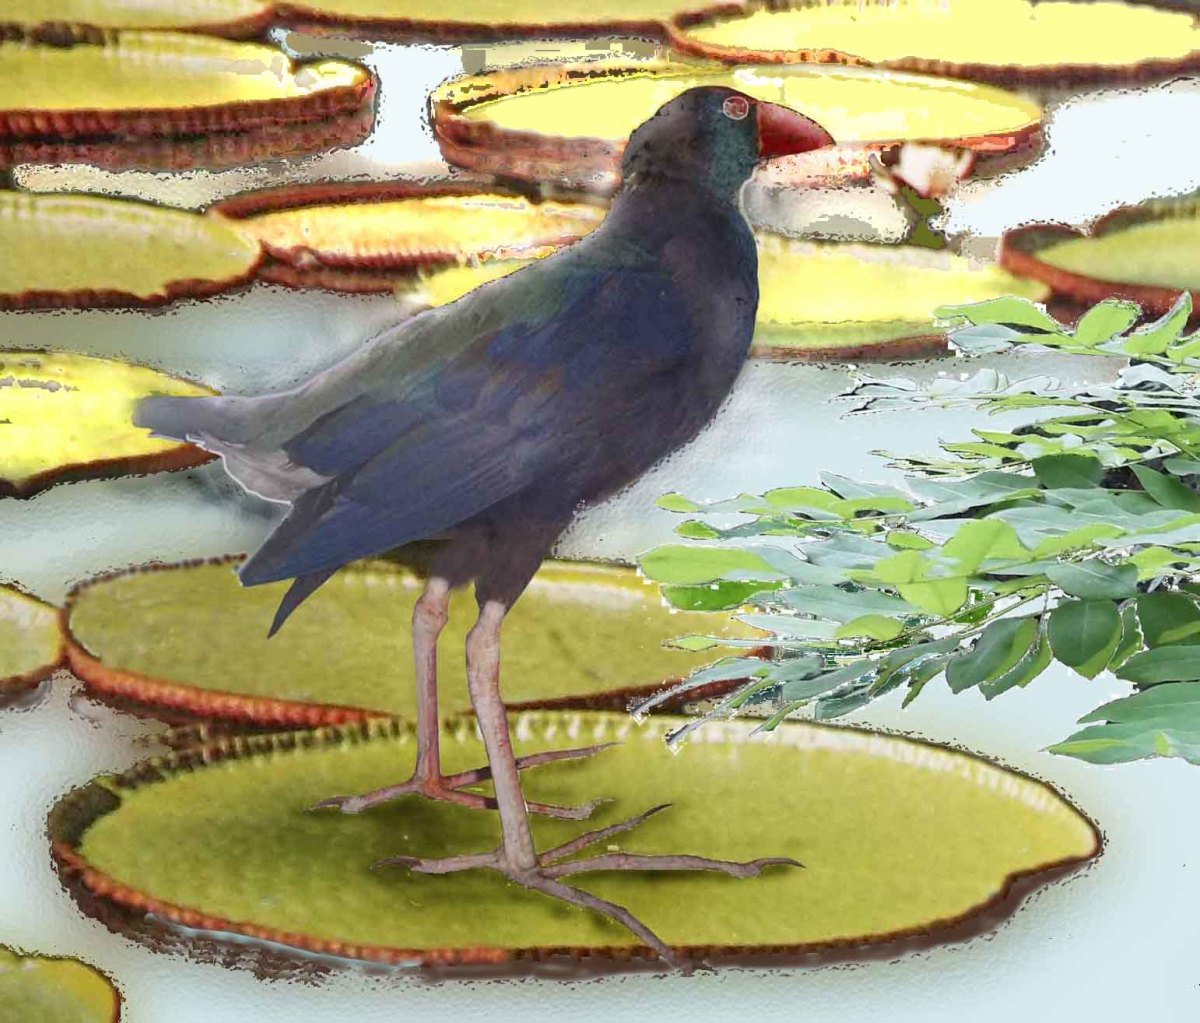 A Bird Watching Safari in Kenya - the African Purple Gallinule and the Saddle Billed Stork